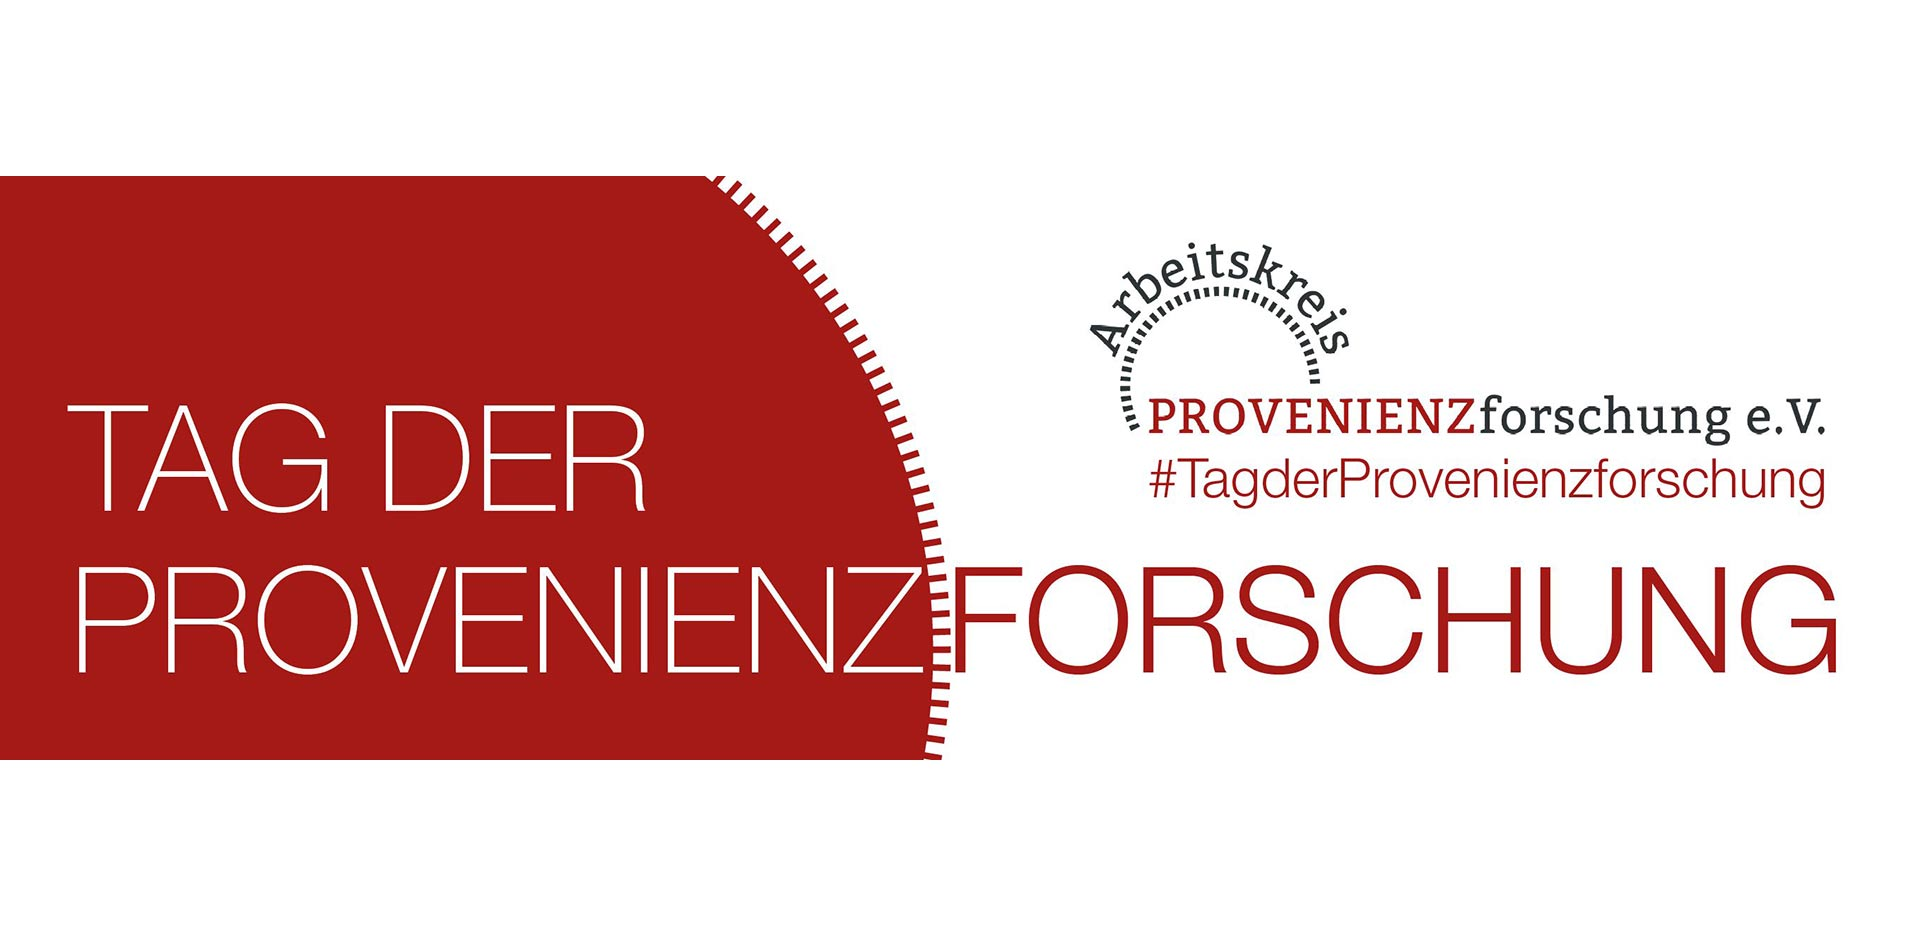 Provenance Research Day / Arbeitskreis der Provenienzforschung e.V.